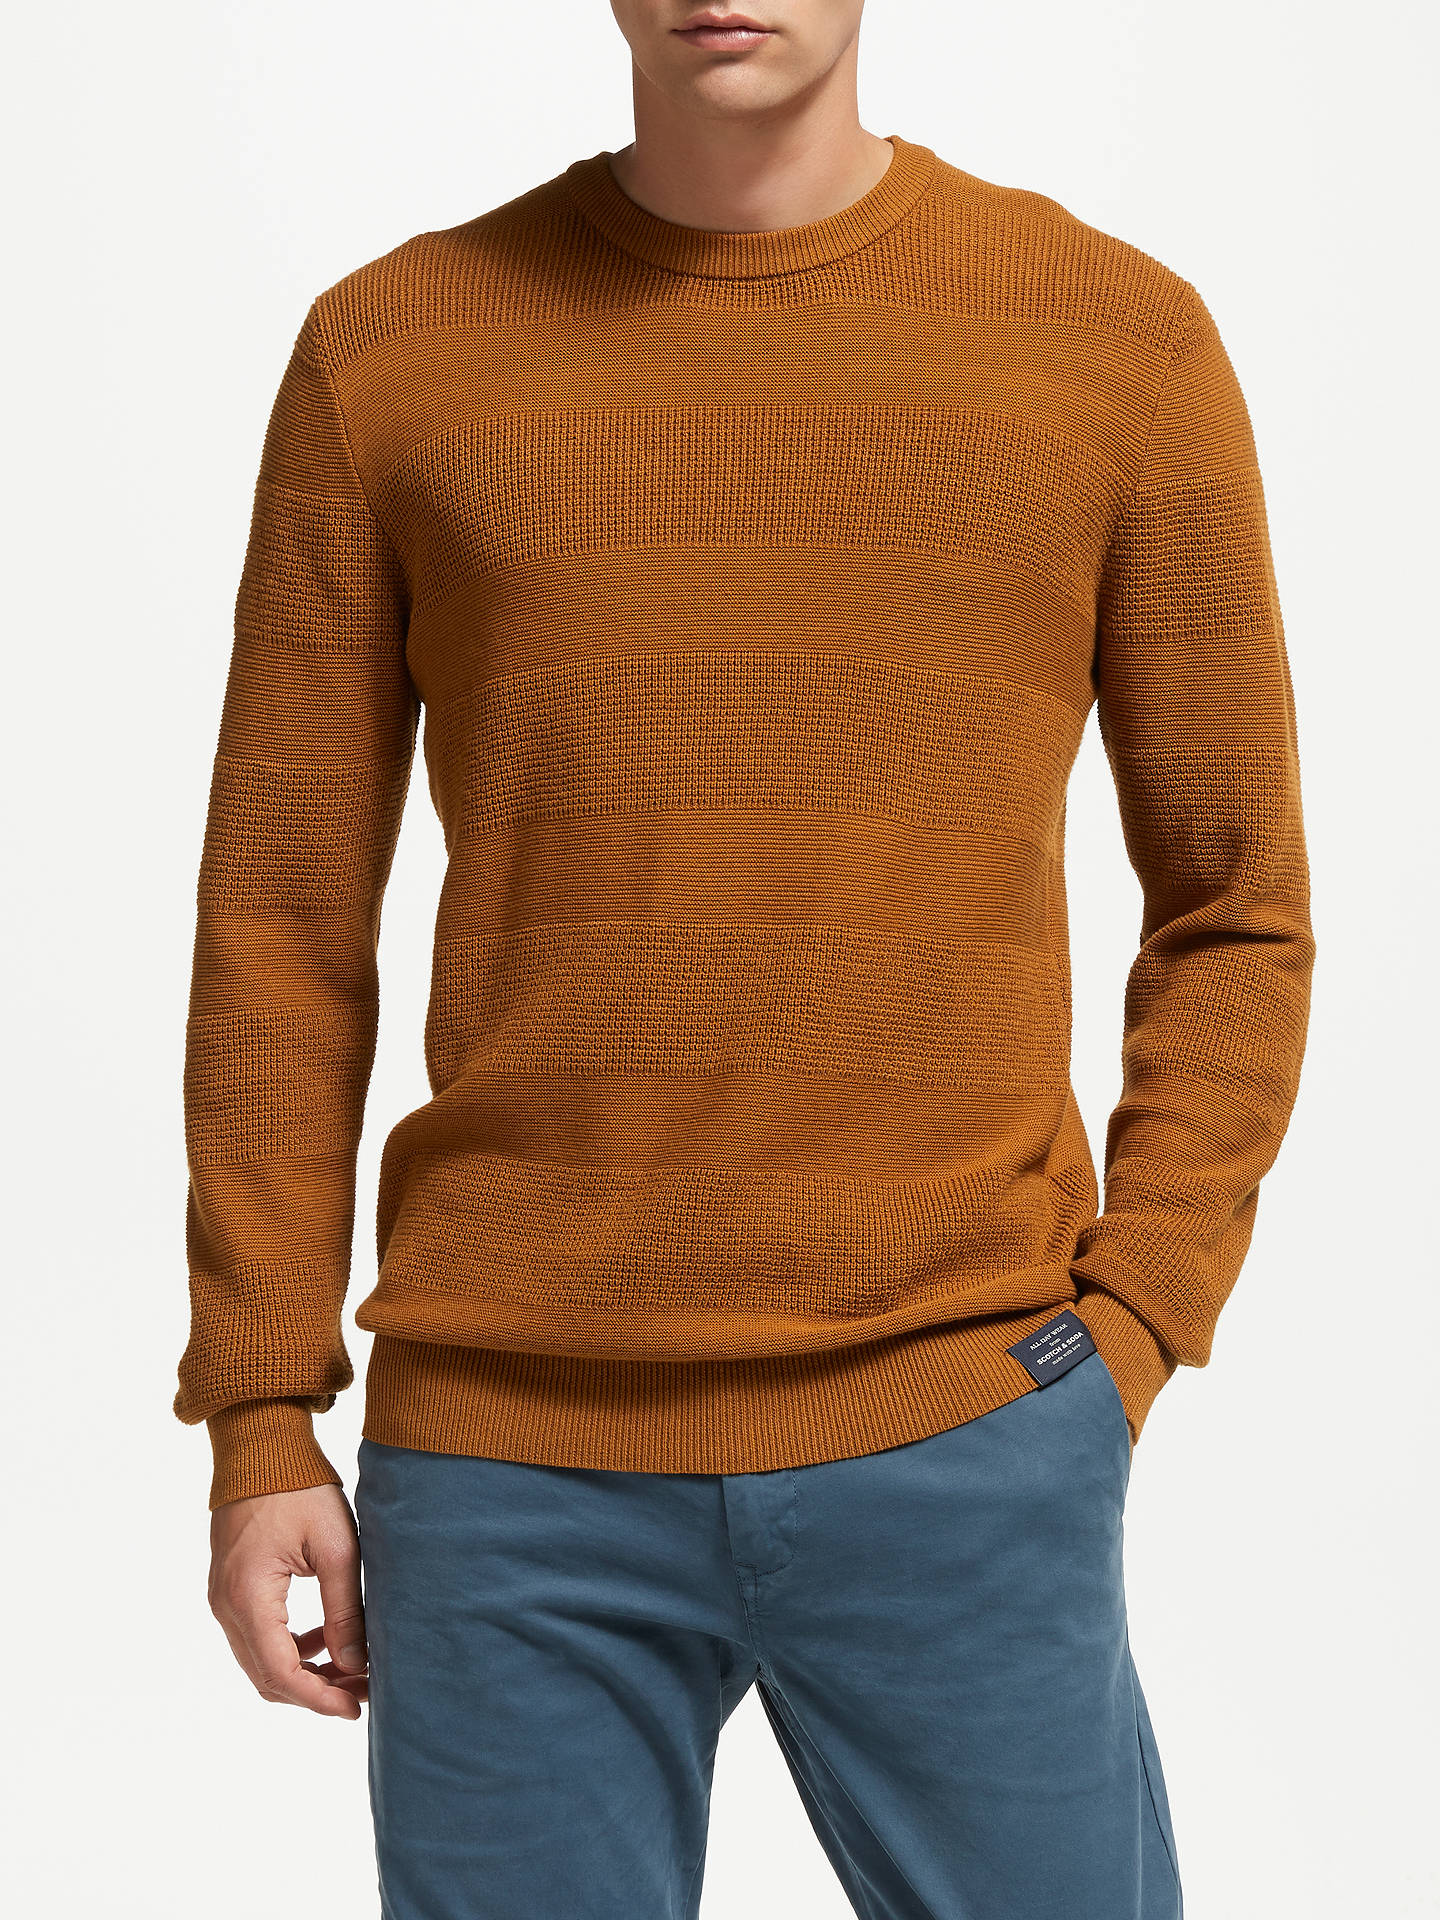 BuyScotch & Soda Chic Crew Neck Jumper, Rust, XL Online at johnlewis.com